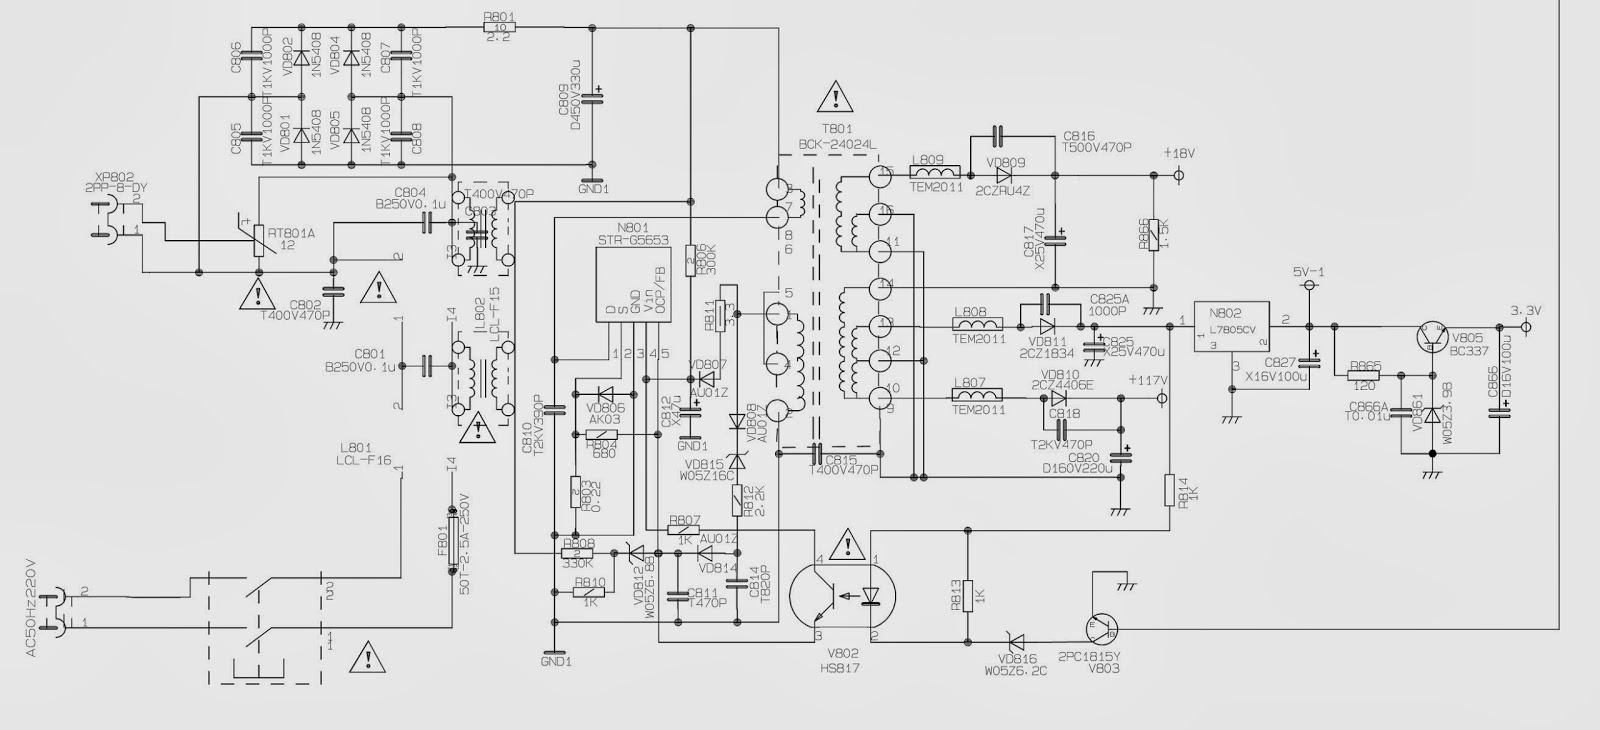 Str G5653 Based Tv Smps Schematic Circuit Diagram Electro Help Power